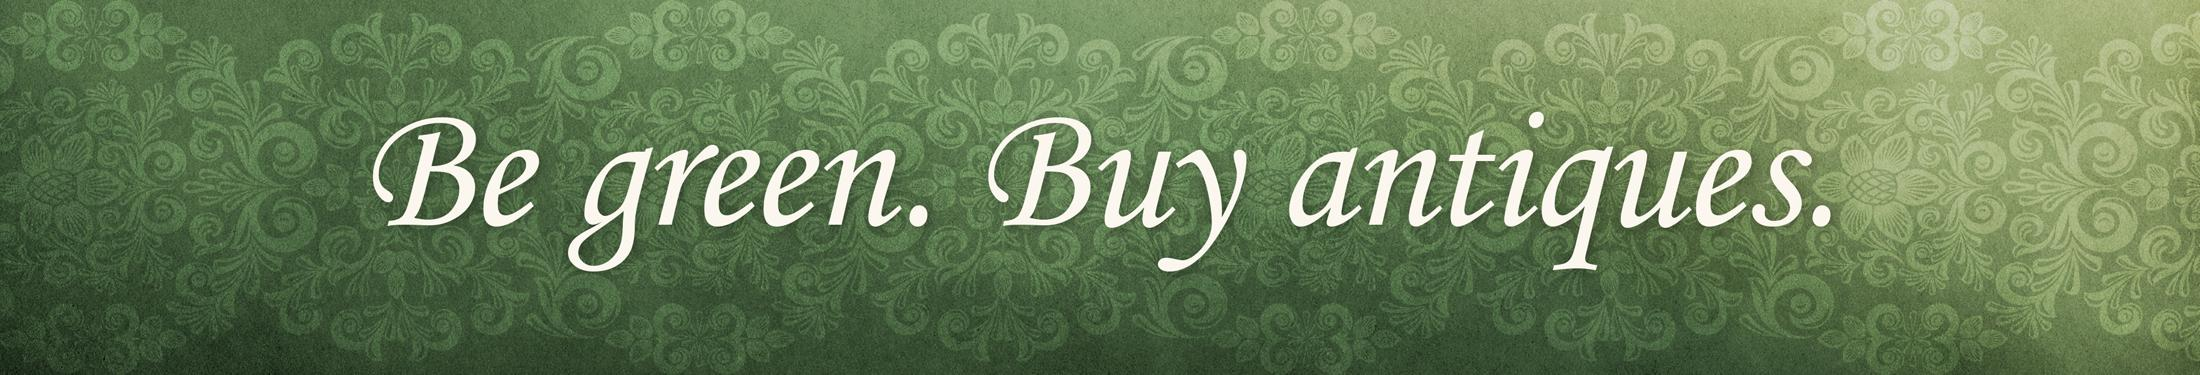 be-green-buy-antiques-banner